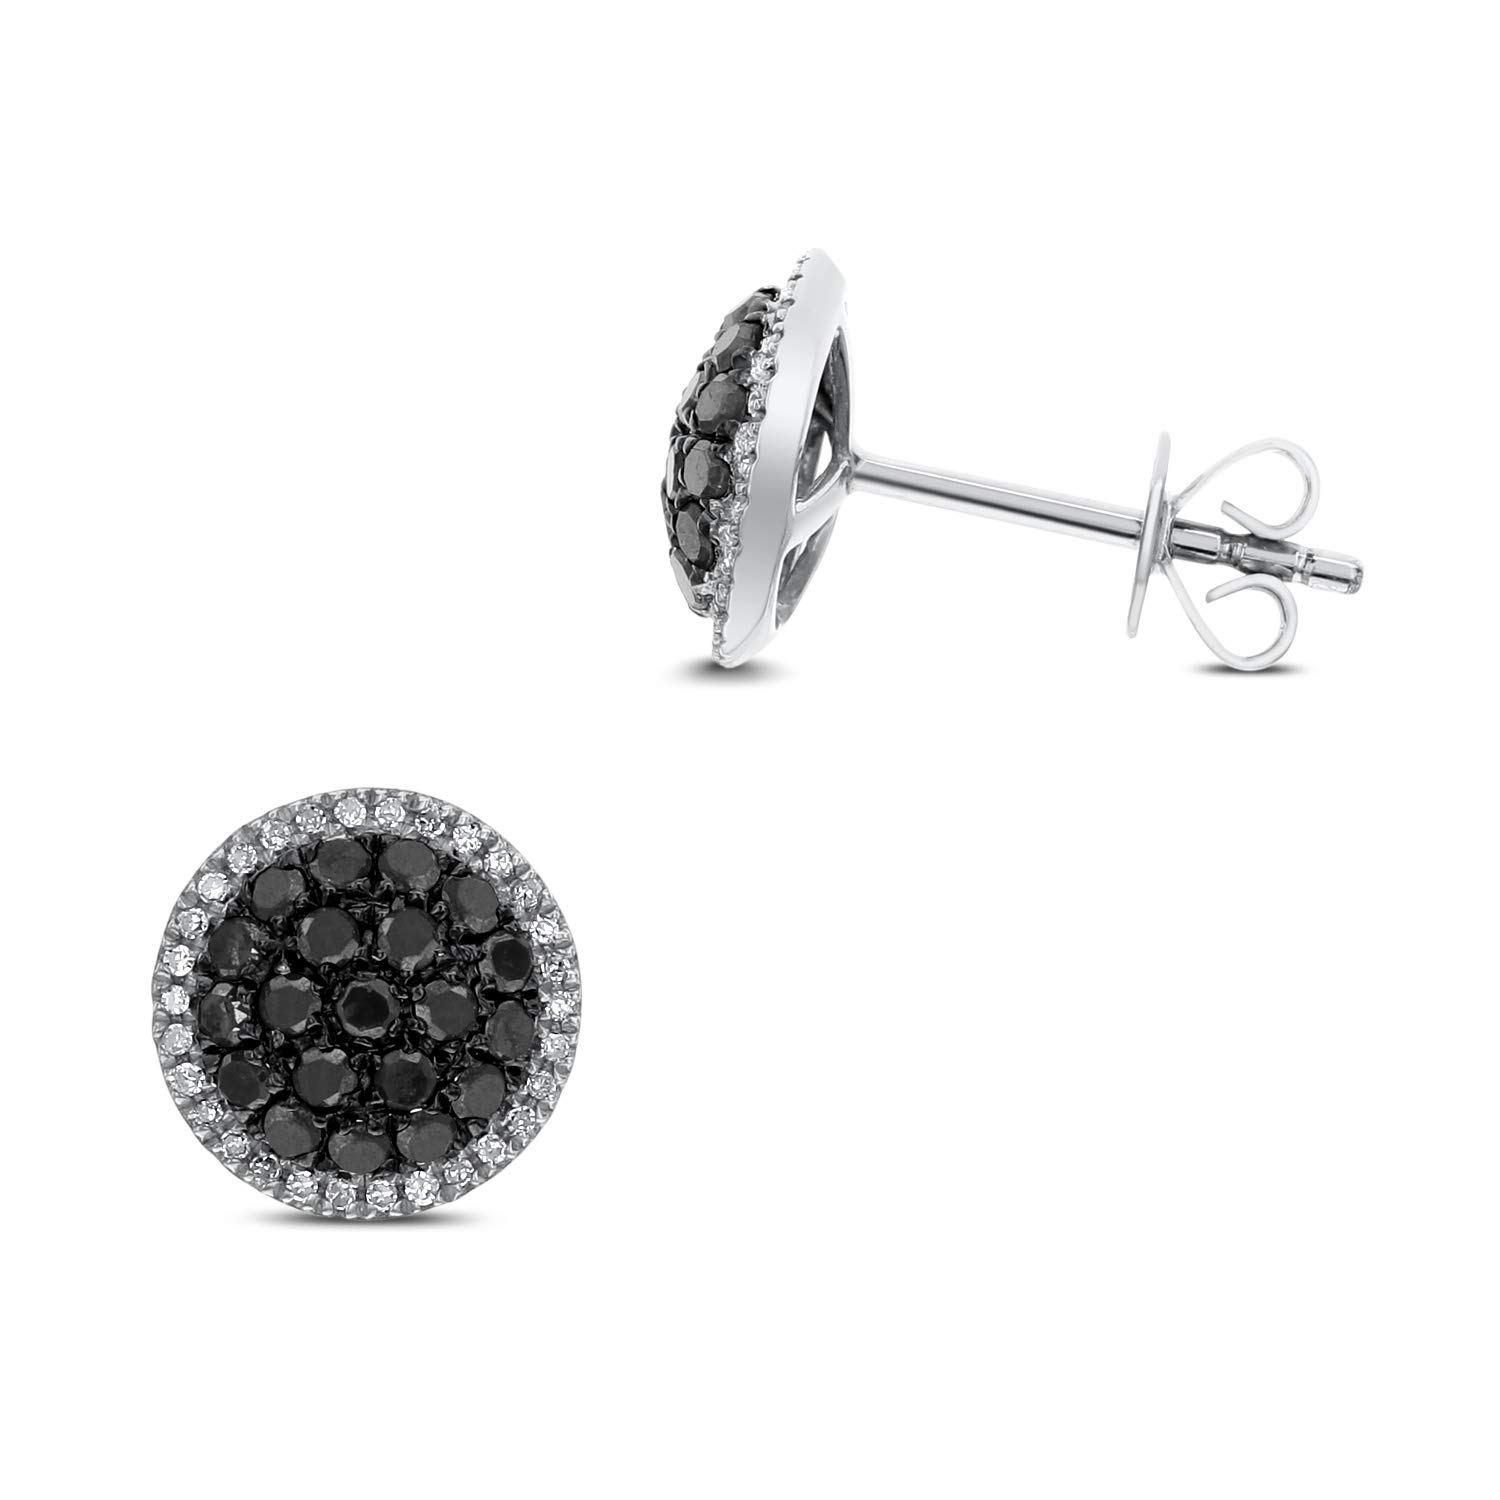 Diamond Couture 10K White Gold Diamond Stud Earrings (0.50cttw Black Diamond and 0.10cttw White Diamond I-J Color, I1-I2 Clarity), Gift for Her